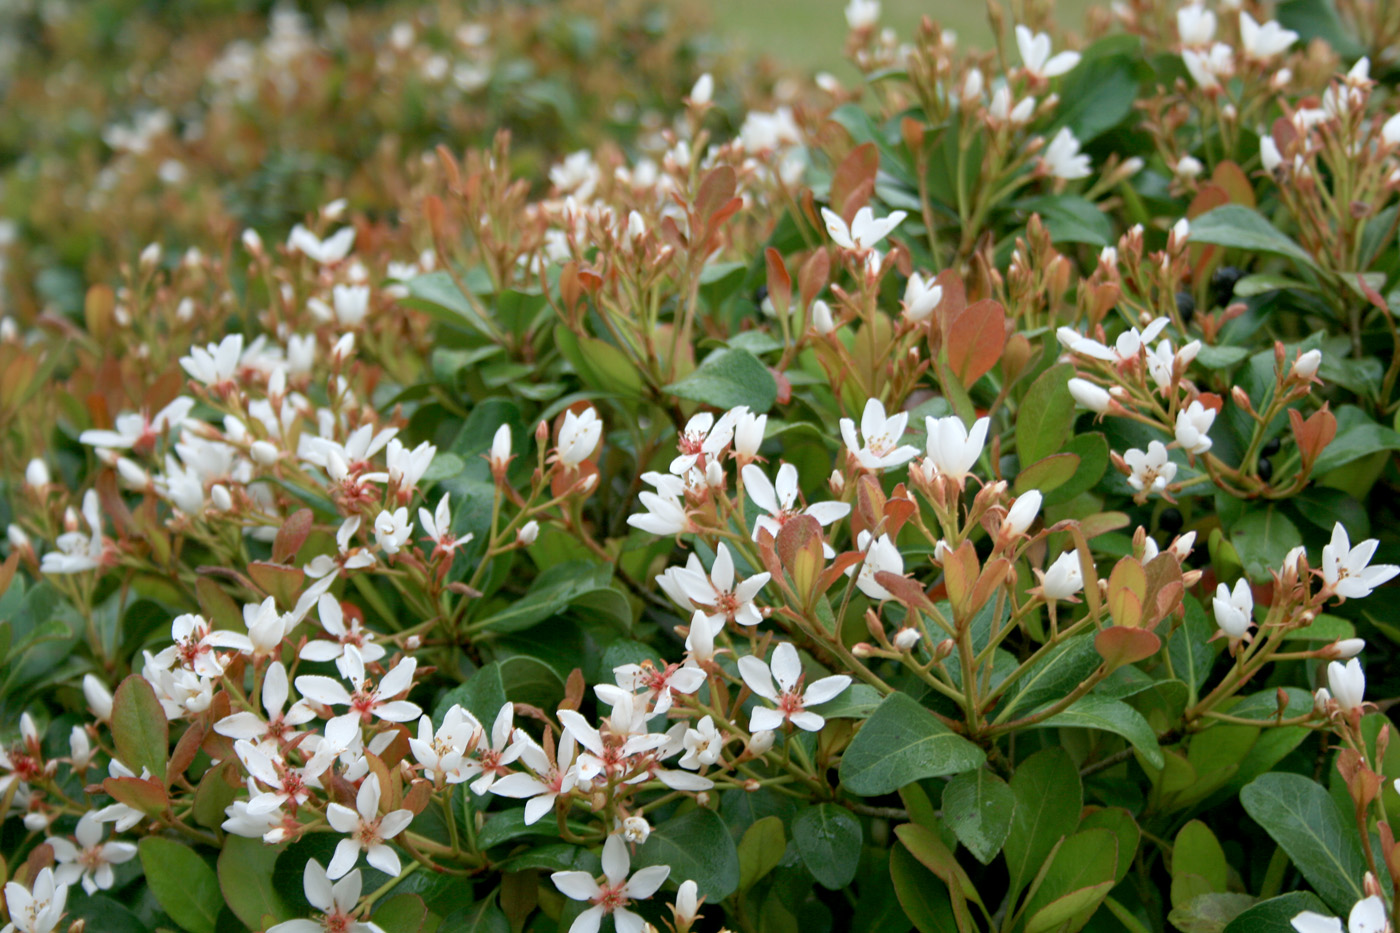 Franklin County Ms News Springtime Blooming Indian Hawthorn Shrubs Available